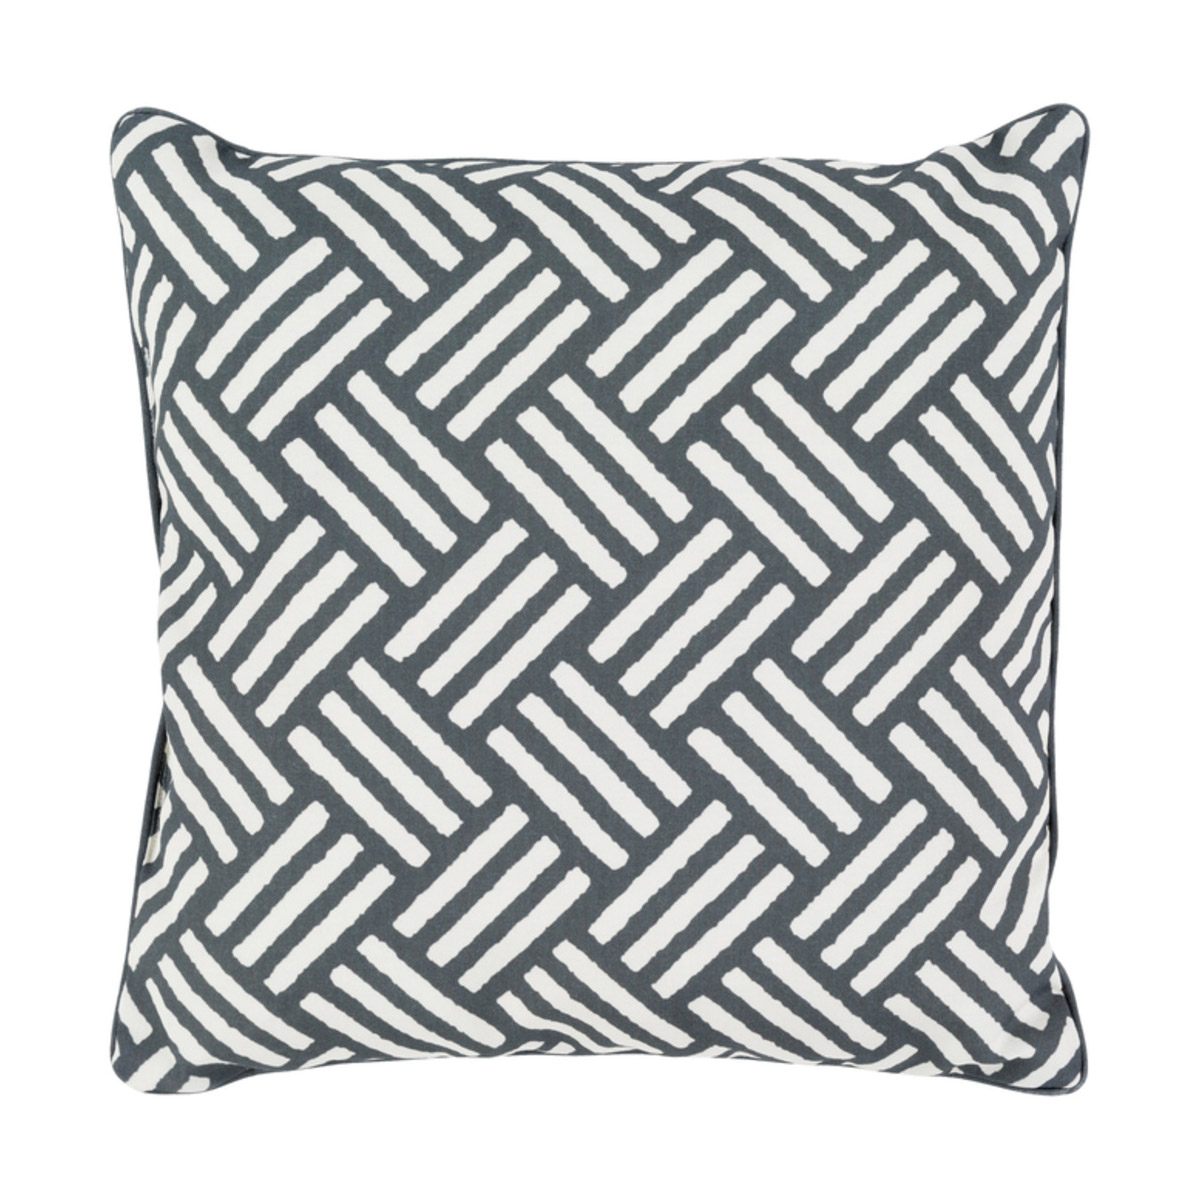 Surya Bw007 1616 Basketweave 16 X 16 Inch Black And White Outdoor